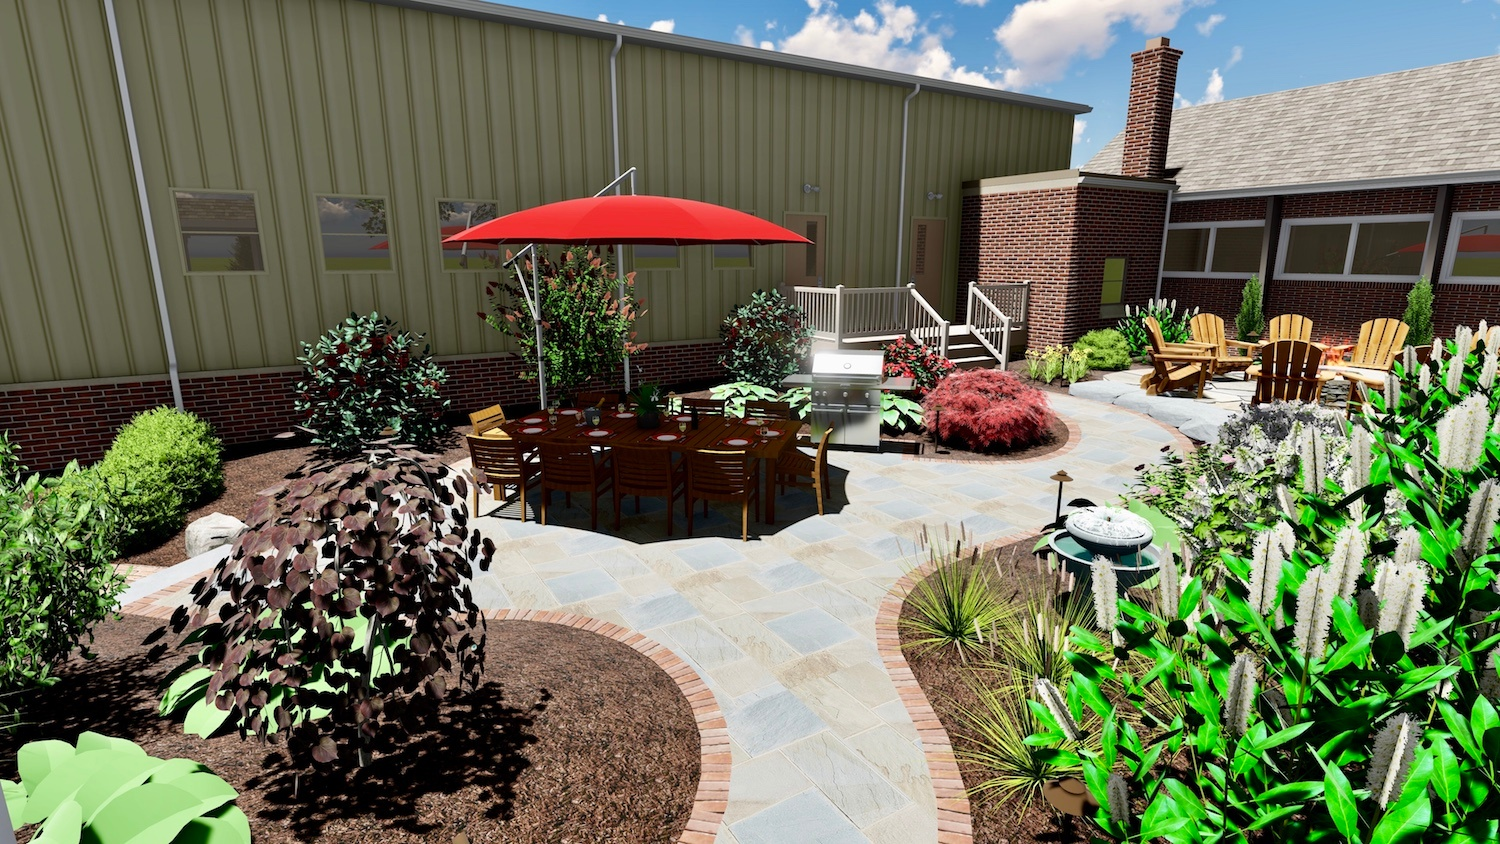 Important Considerations and Design Ideas for Landscaping Church Grounds